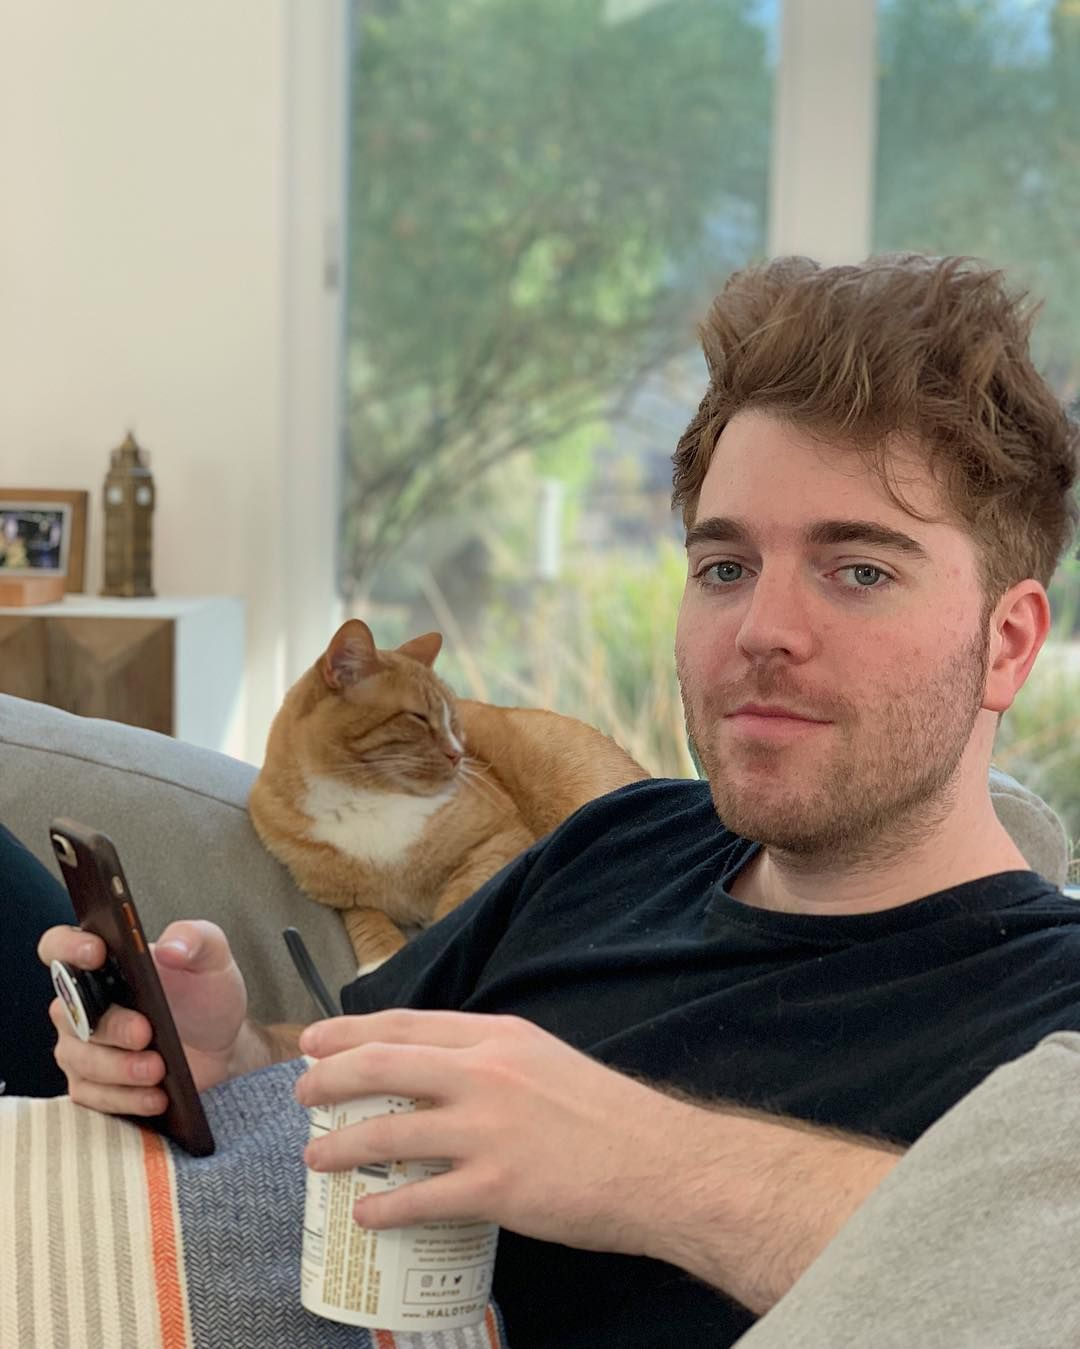 Image may contain: Celebrities who unfollowed James Charles, James Charles, Shane Dawson, YouTuber, unfollow, subscribers,Finger, Furniture, Couch, Mobile Phone, Cell Phone, Phone, Electronics, Abyssinian, Animal, Pet, Cat, Mammal, Human, Person